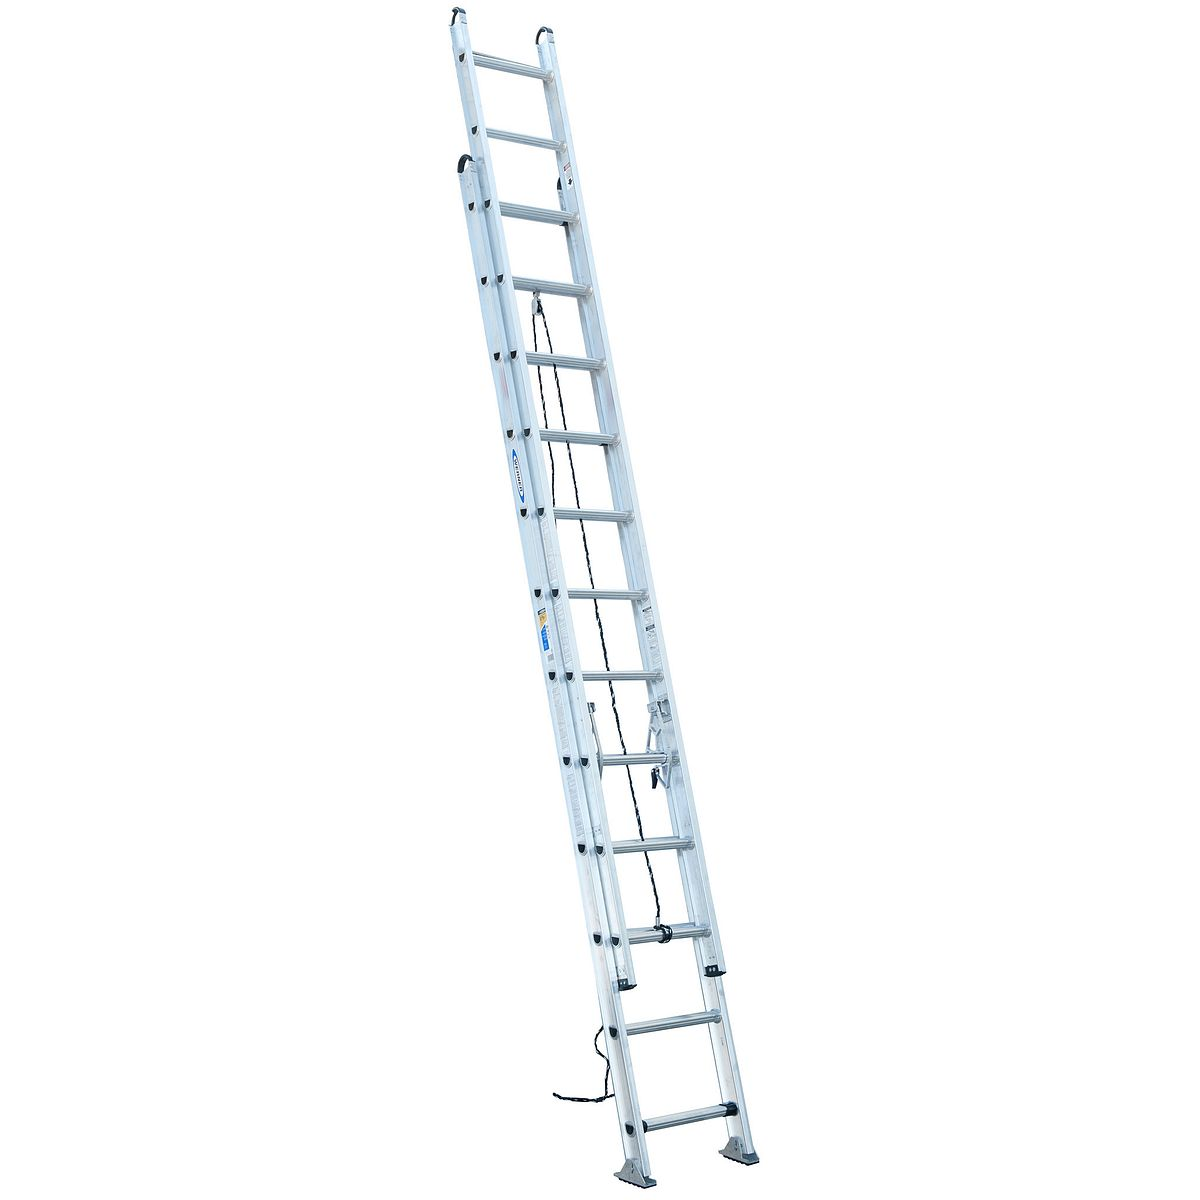 D524 2az extension ladders werner au for Escaleras extensibles